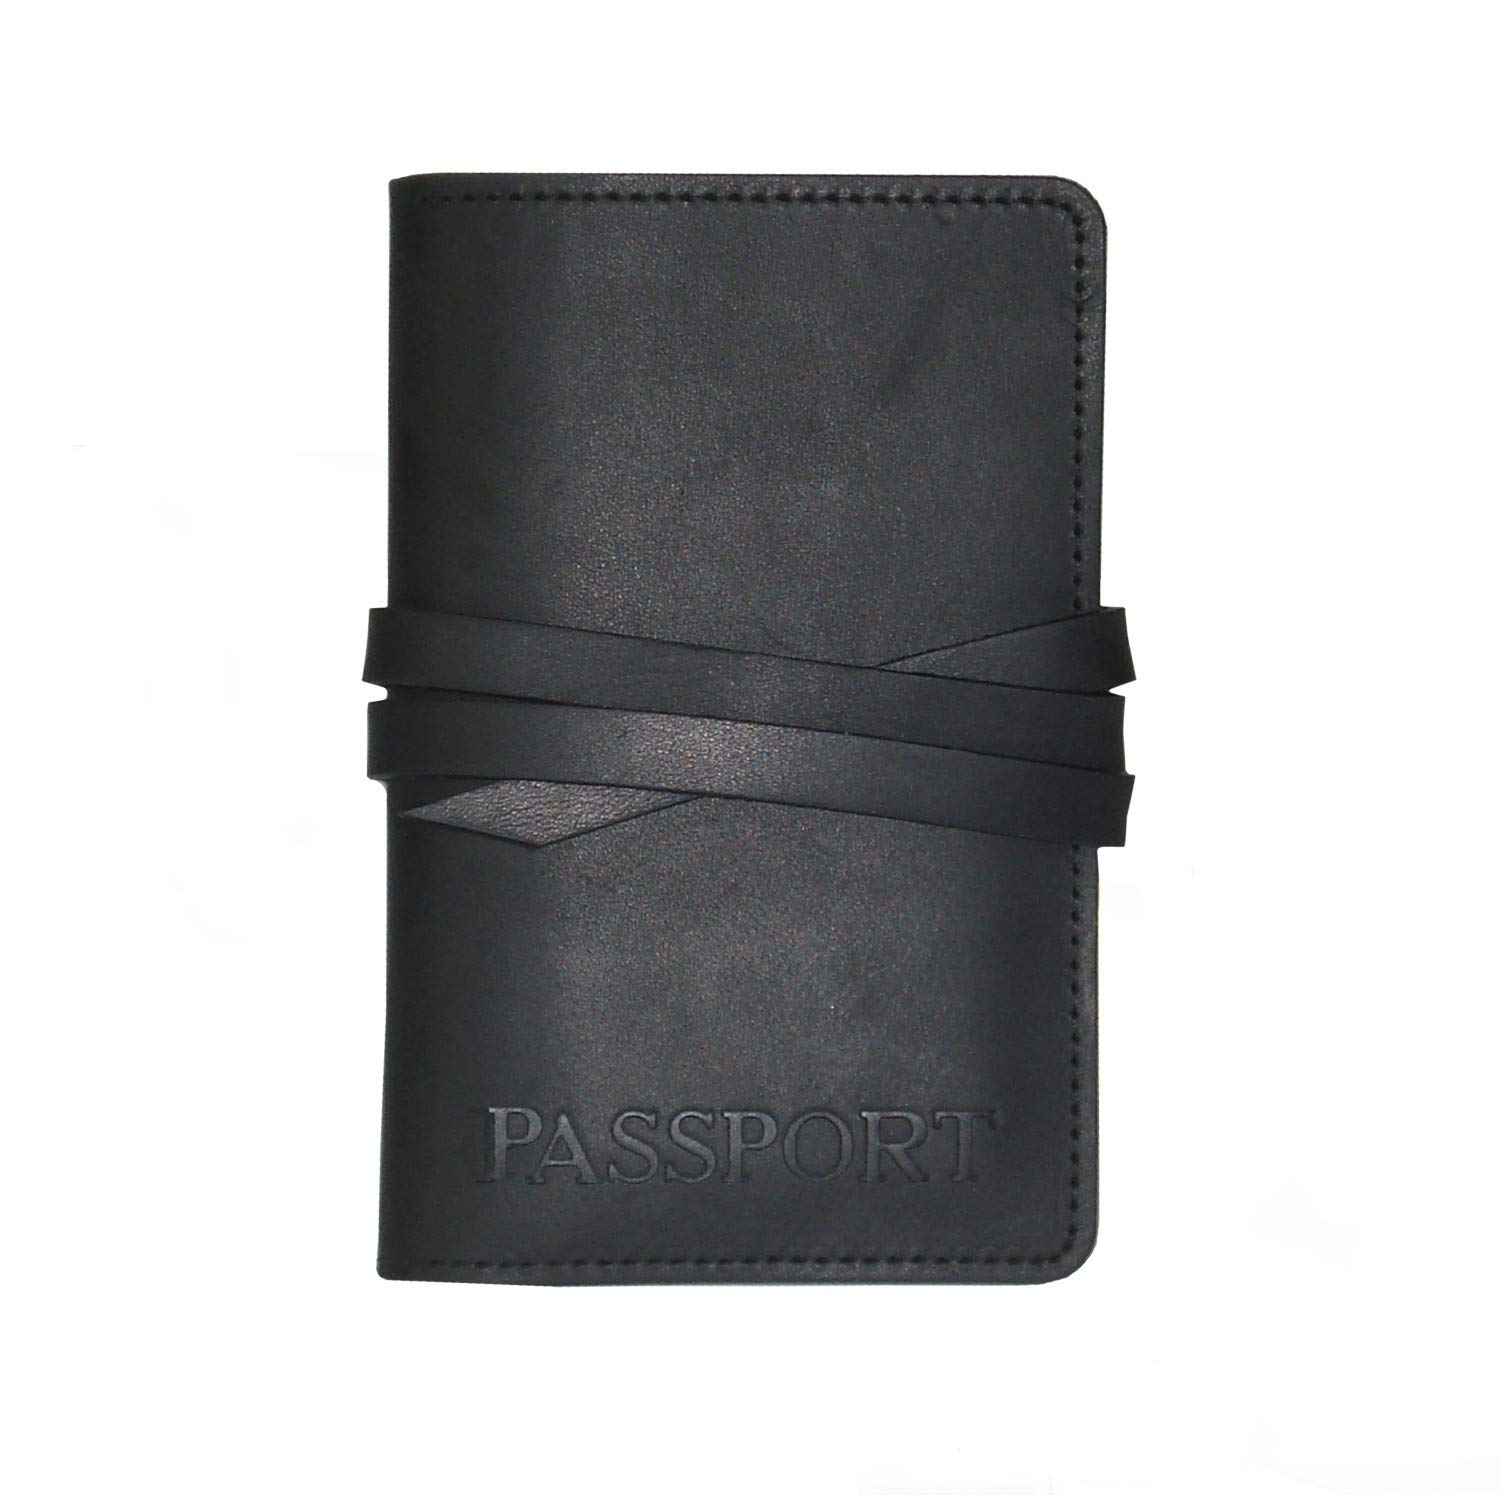 Steel Timber Leather - Passport Travel Wallet in Brown â€'' Genuine Leather Travel Wallet Handcrafted in St. Louis, Missouri - Black by Steel Timber Leather